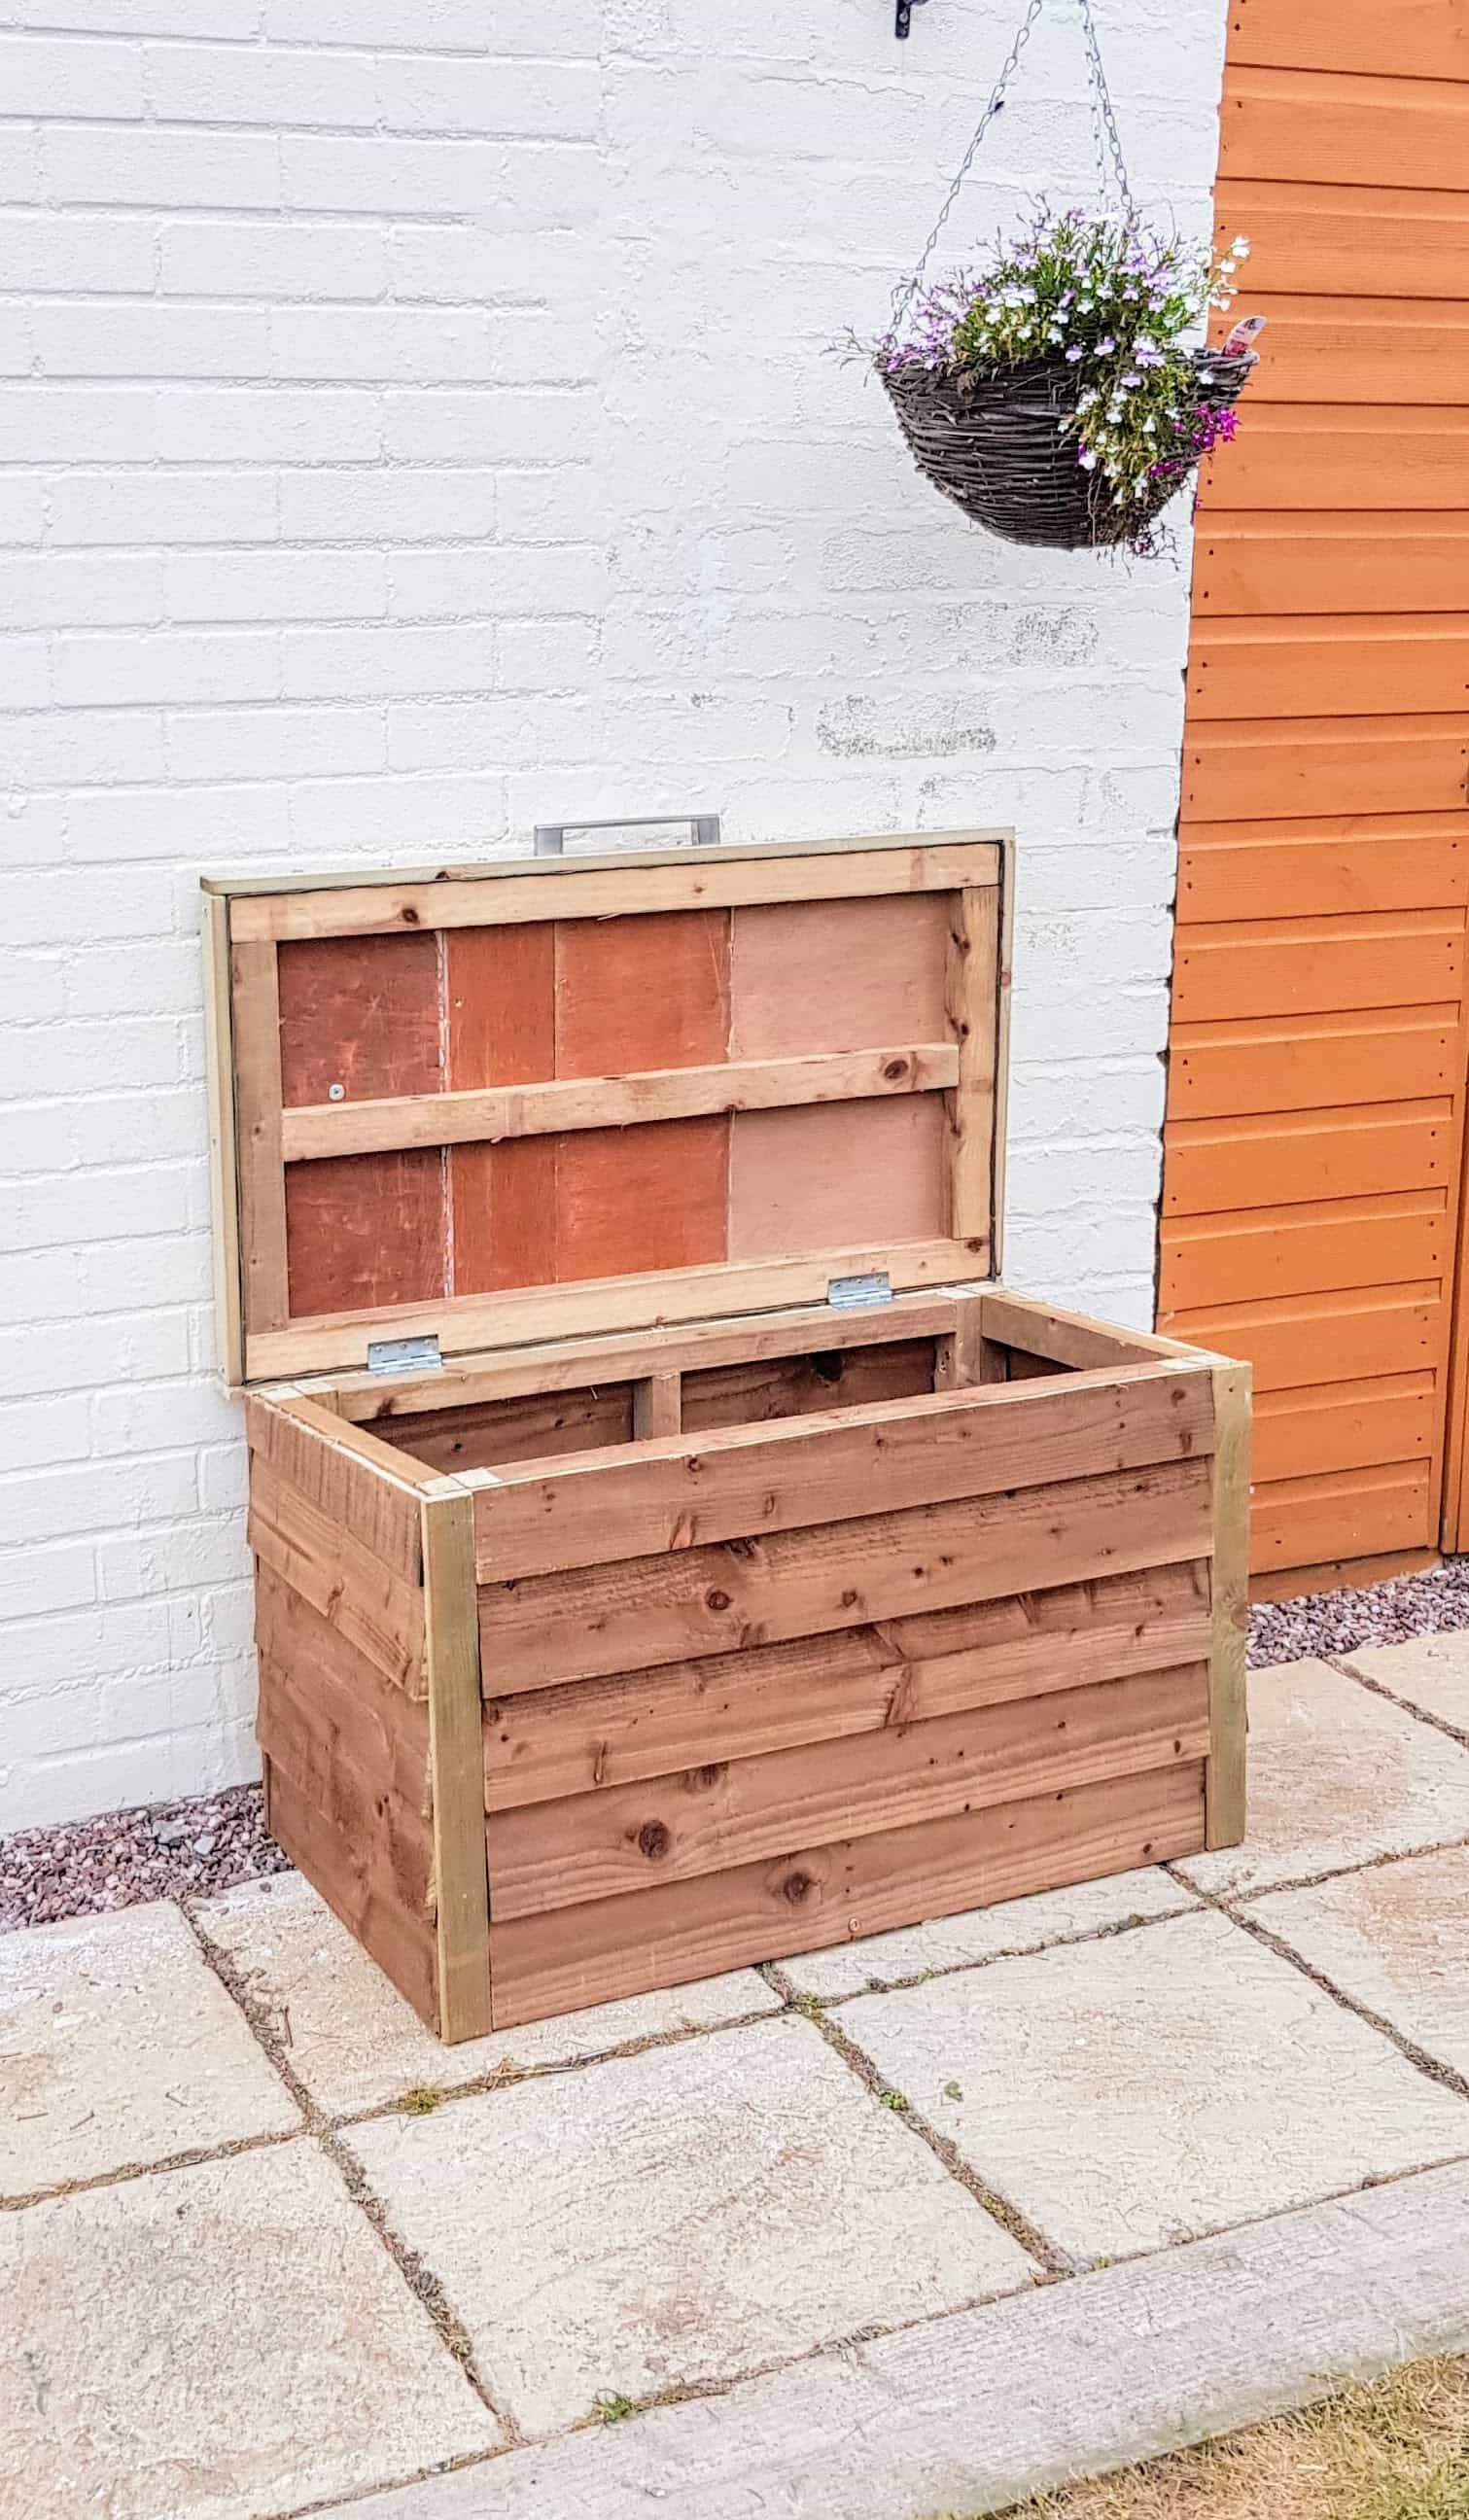 How To Build A Featheredge Garden Storage Chest Box The Carpenter S Daughter Garden Storage Outdoor Storage Boxes Outdoor Bike Storage